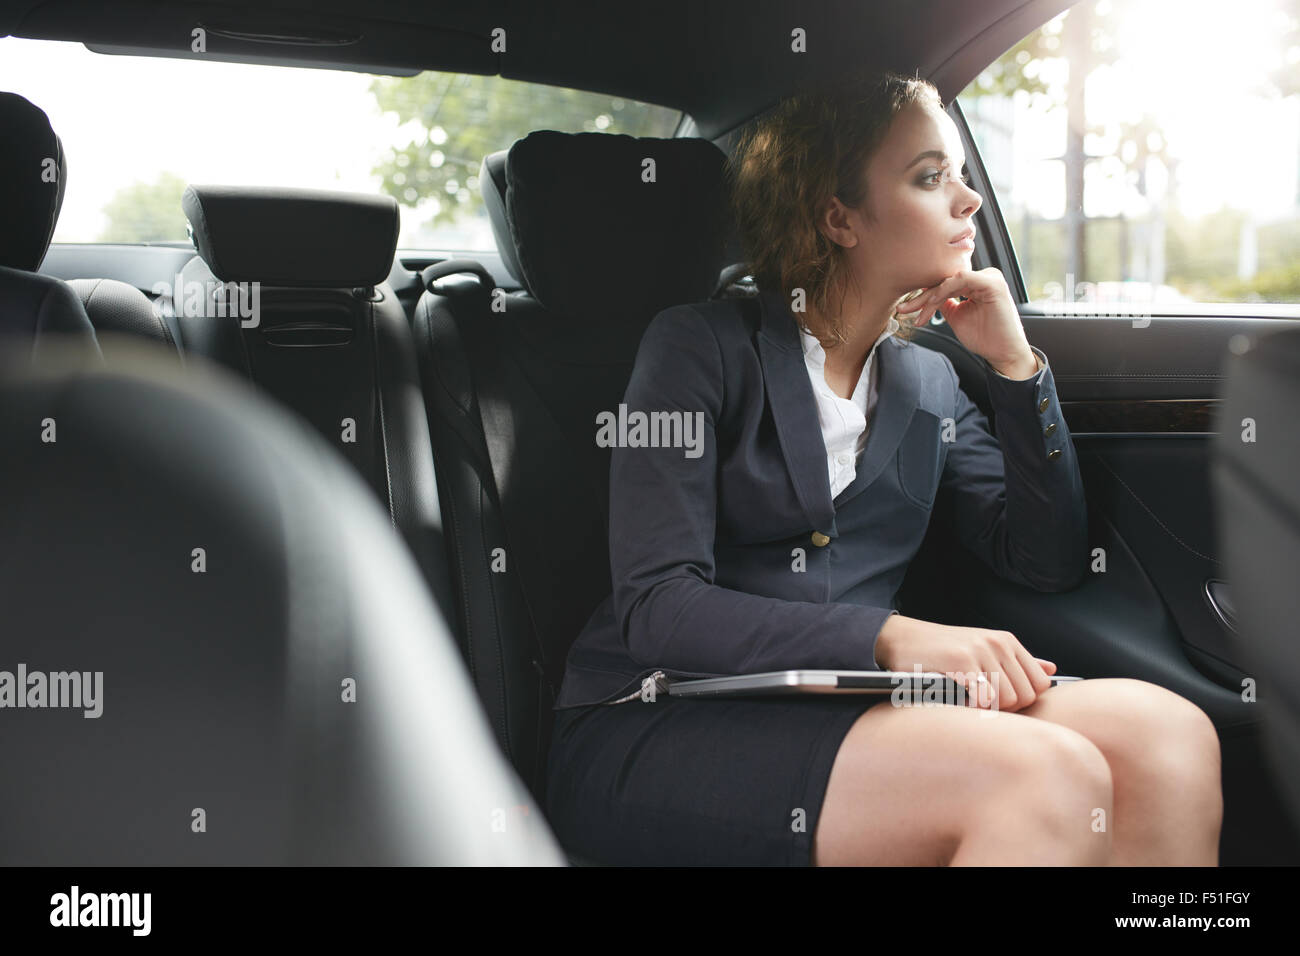 Young businesswoman traveling to work in the luxury car on the back seat looking outside the window. - Stock Image